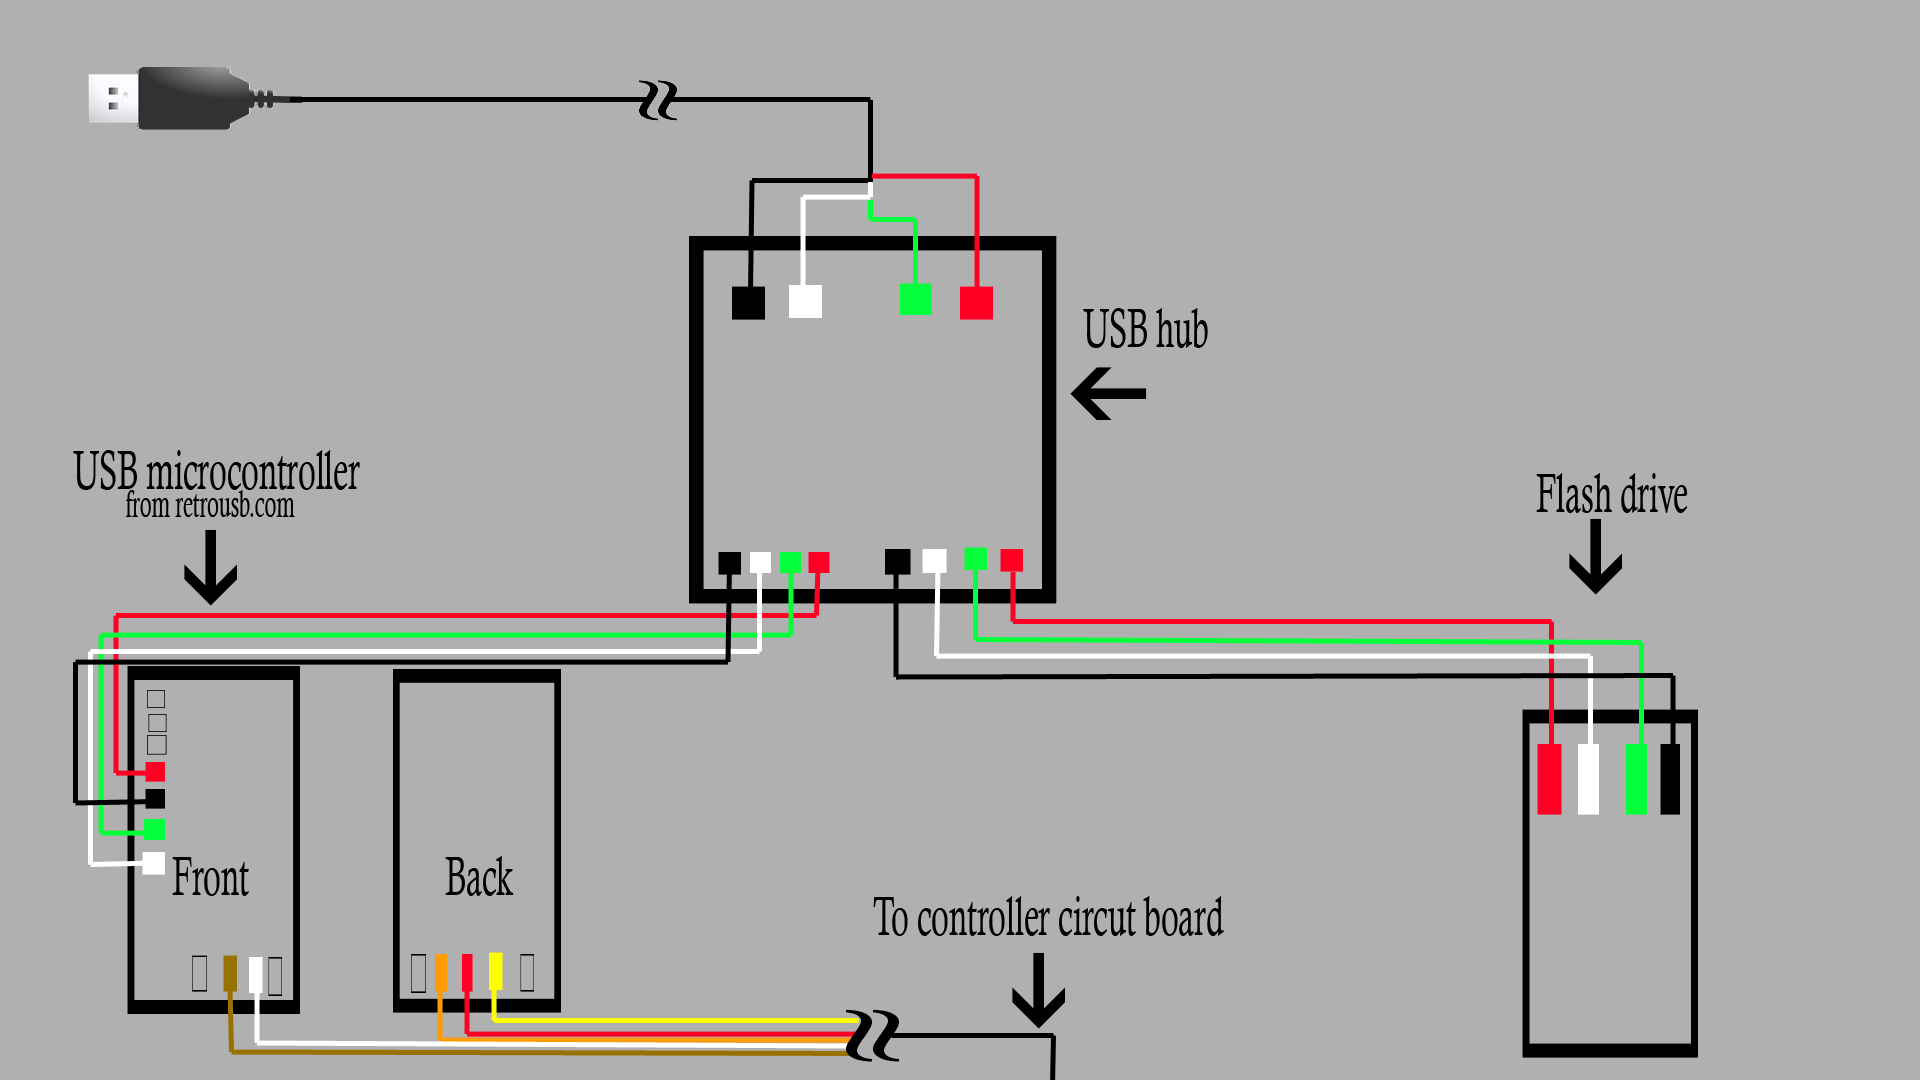 5 Pin Usb To Rca Wiring Diagram | Wiring Diagram - Wiring Diagram For Usb